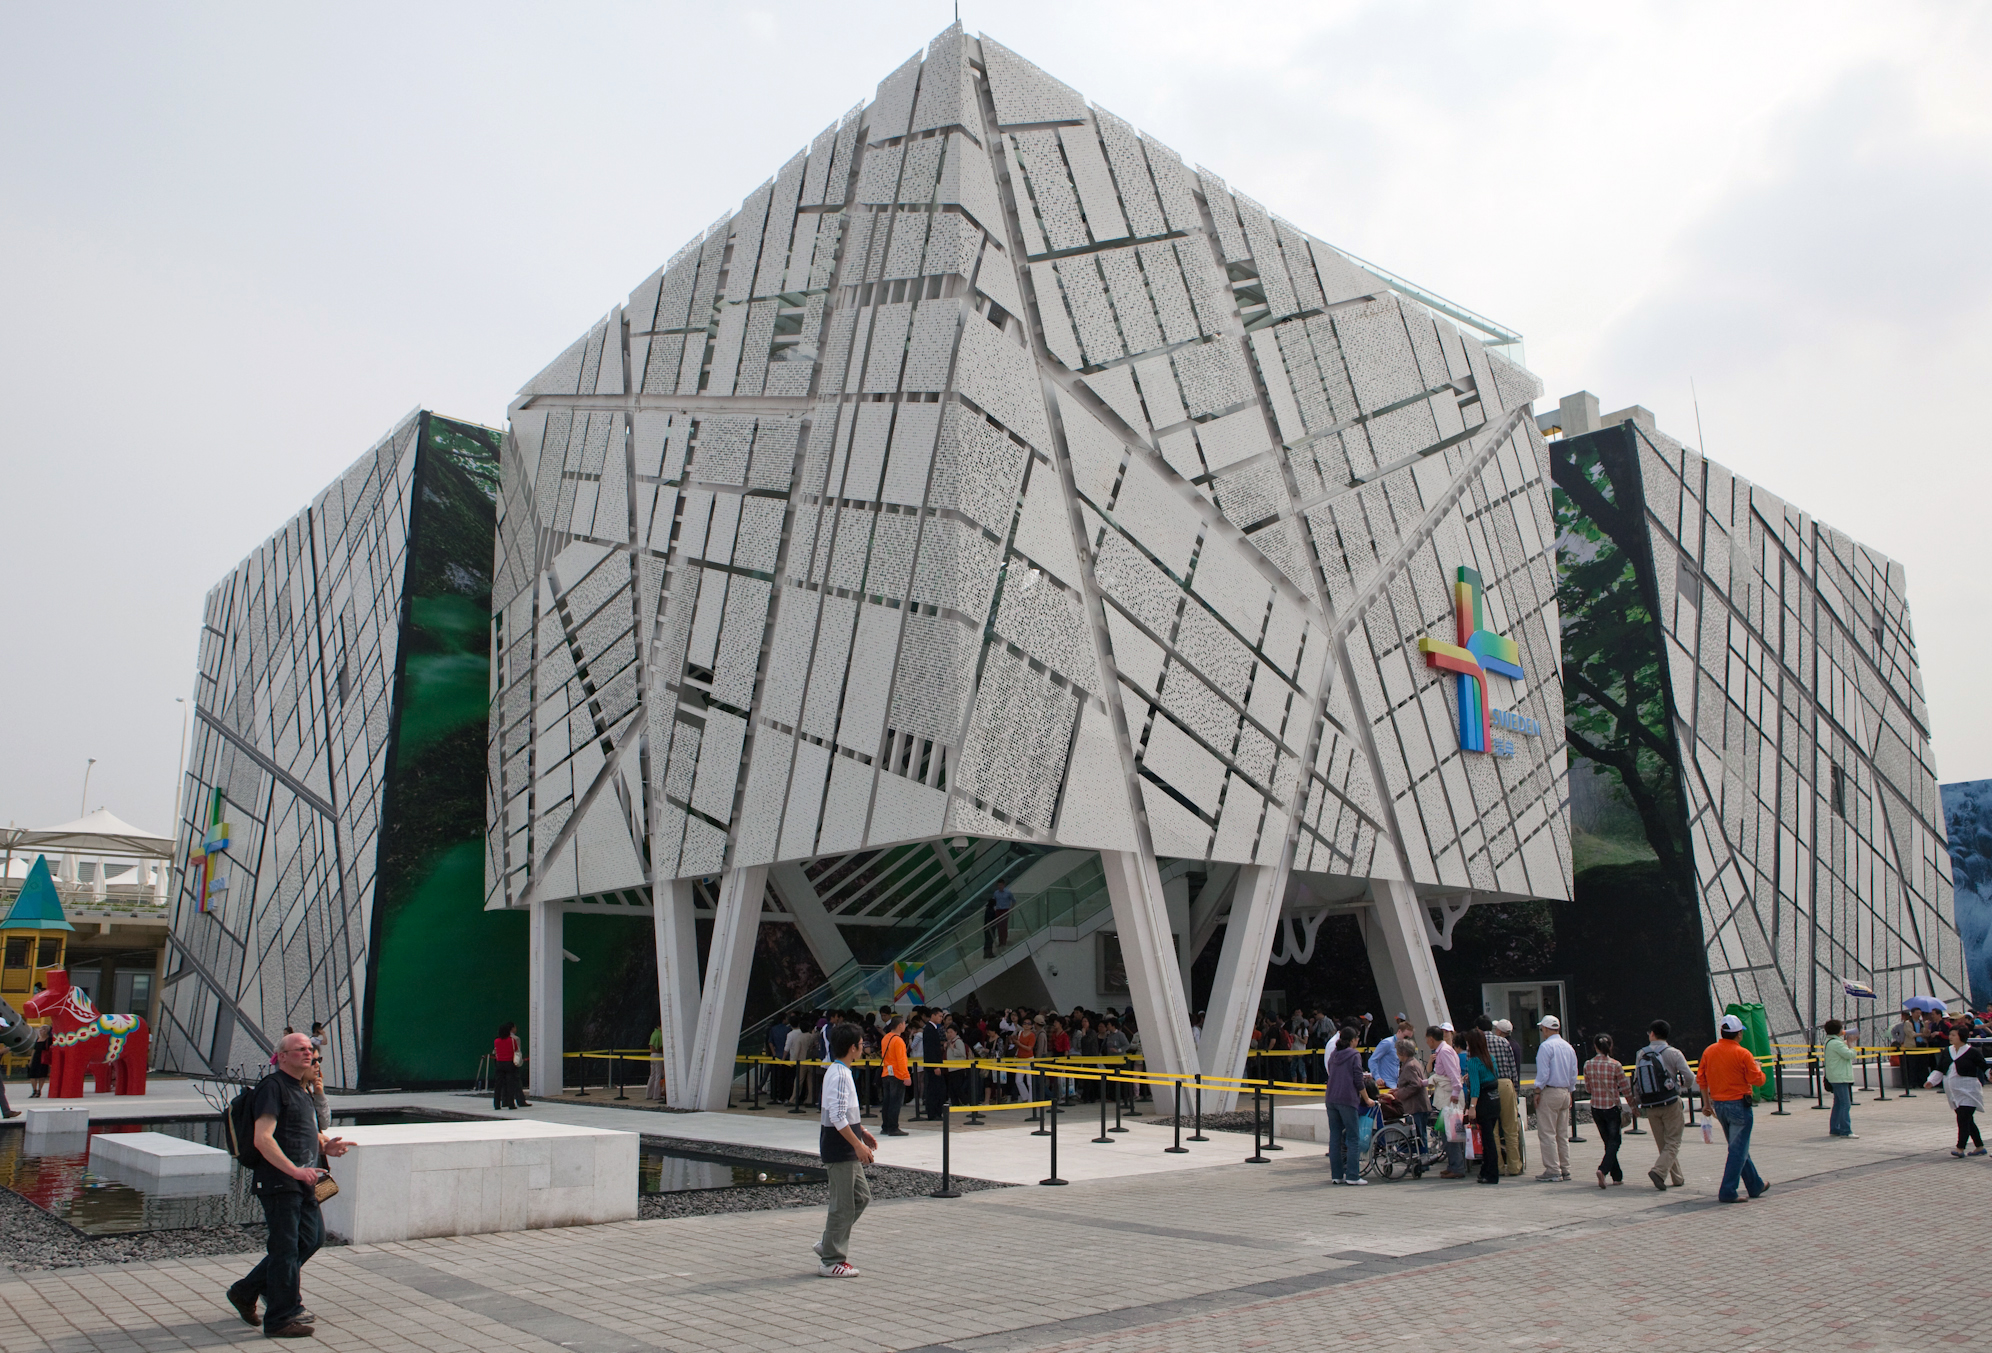 Sweden's Pavillion at the 2010 World Expo in Shanghai